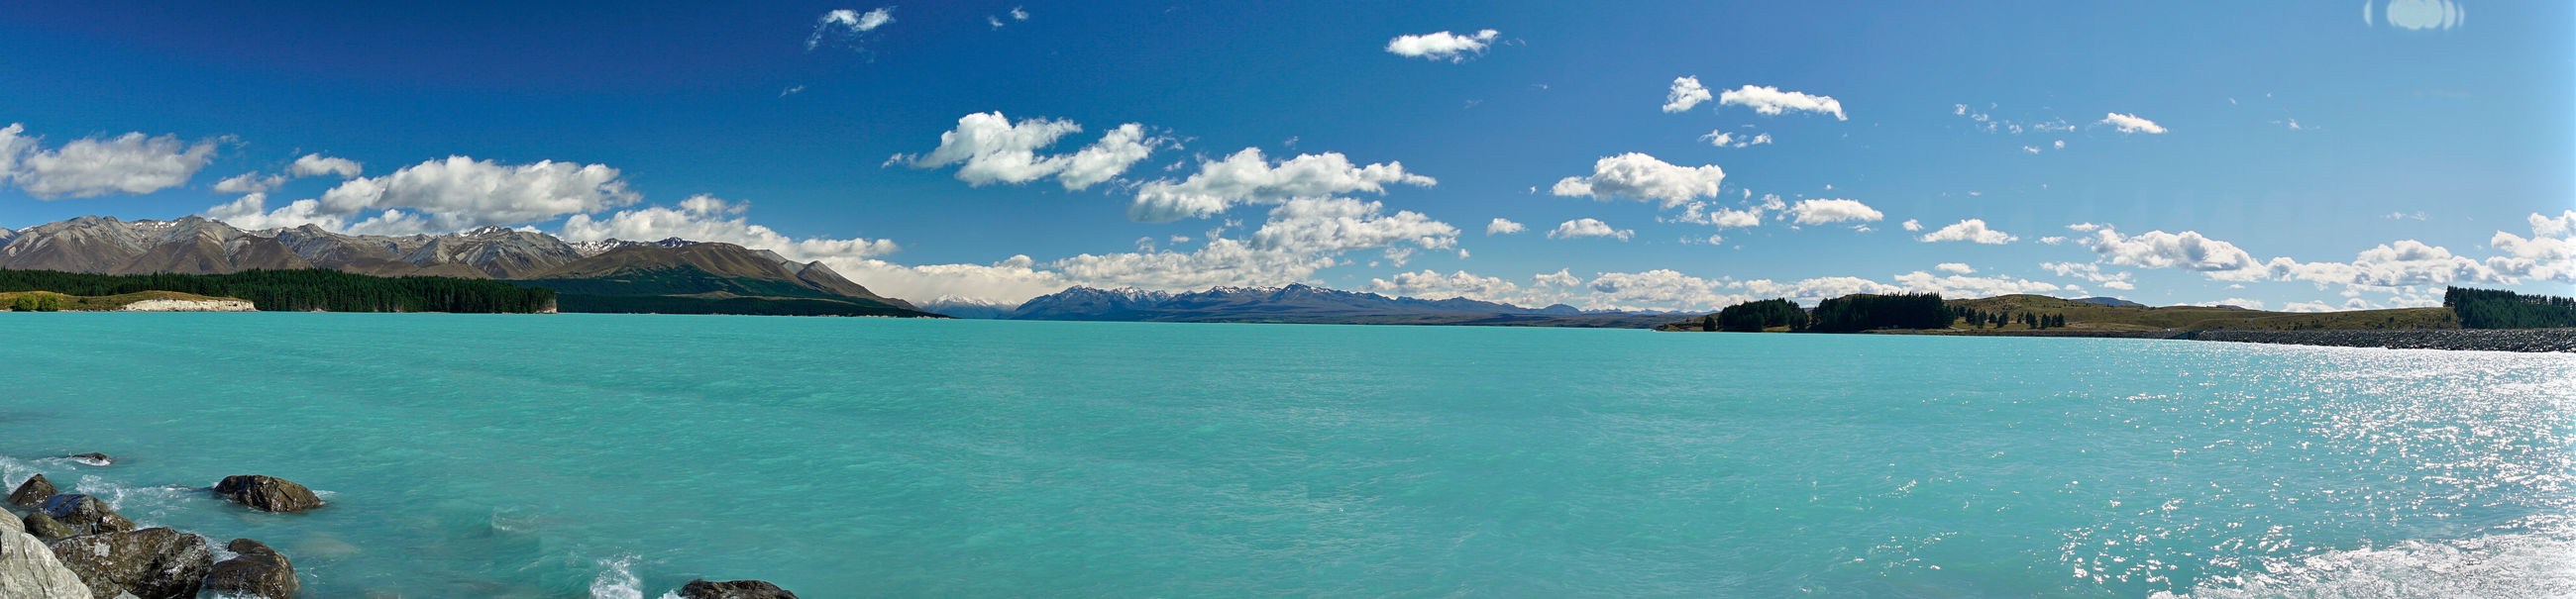 PANORAMIC VIEW OF SEA AND MOUNTAINS AGAINST SKY